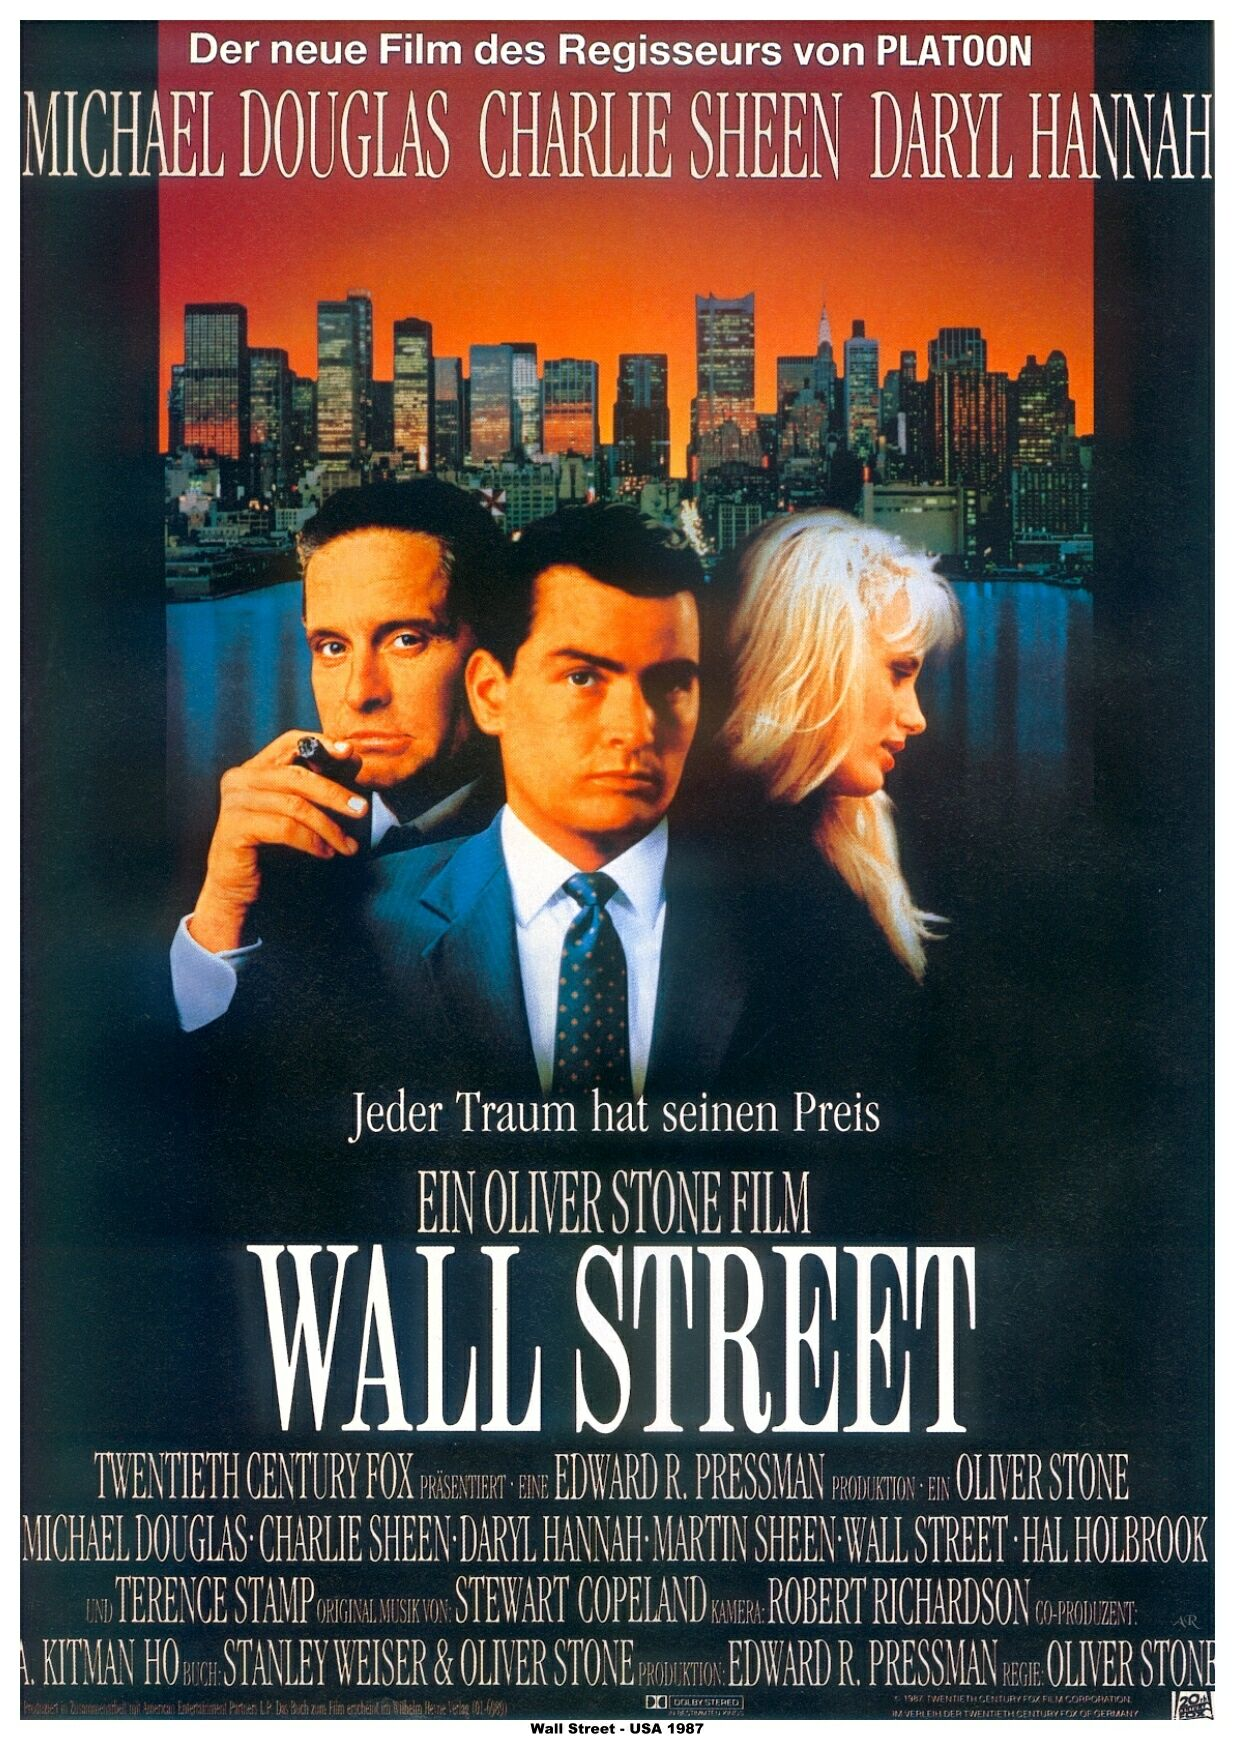 """a review of oliver stones 1987 movie wall street Oliver stone's oscar®-winning """"wall street,"""" which defined an era of excess and   """"wall street"""" originally debuted in cinemas on december 11, 1987, less than   director oliver stone had shot """"wall street"""" earlier that spring and summer, and  the timing of the film's  ant-man and the wasp – review."""